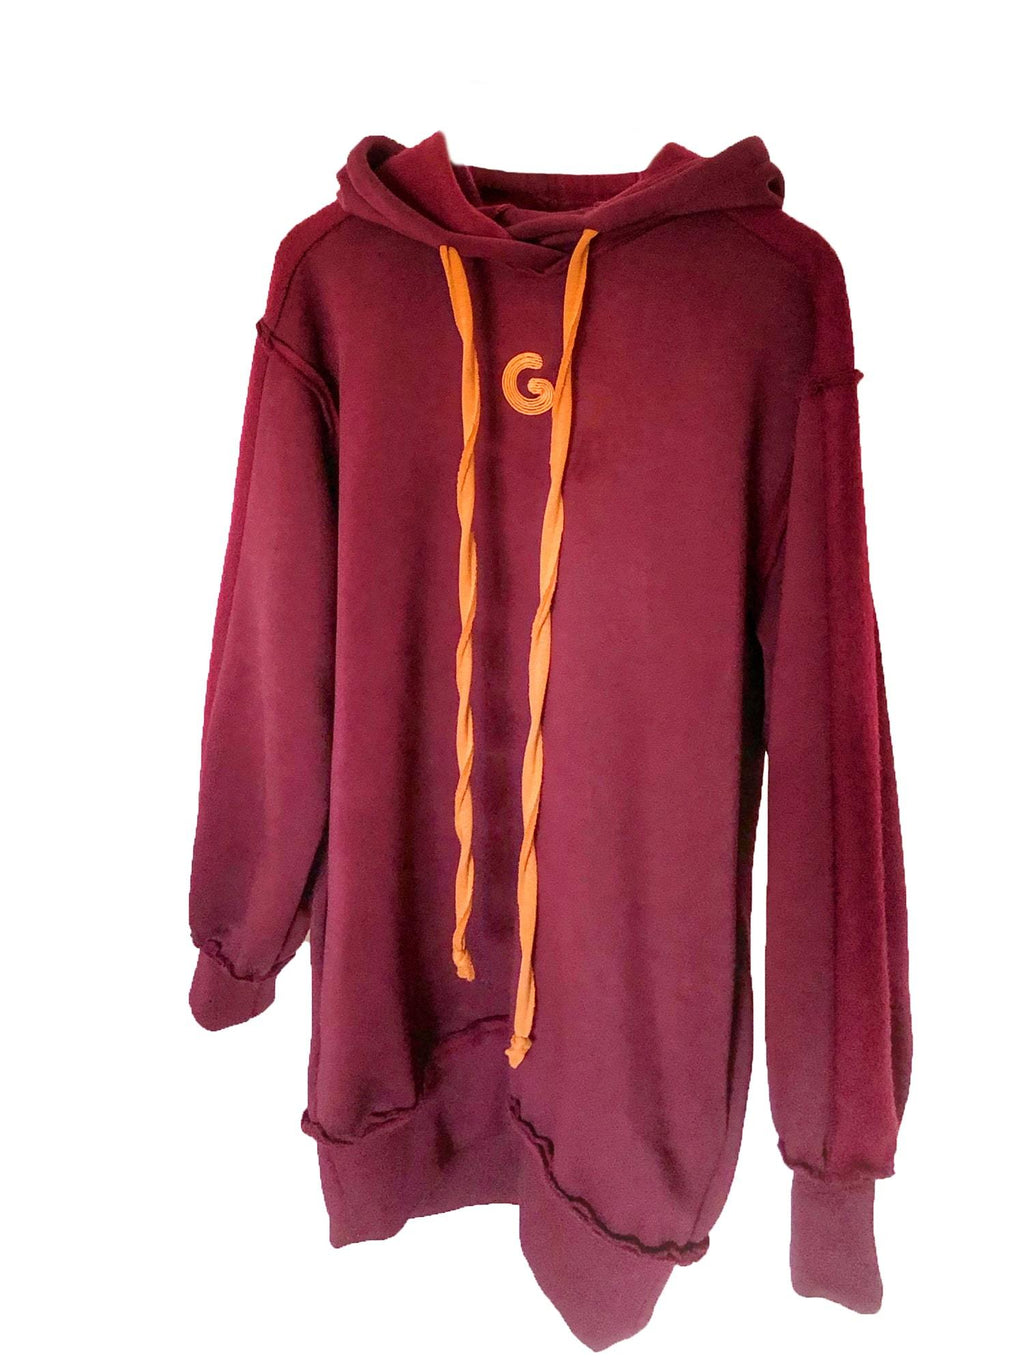 TheG Fresh Oversize Hoody Woman // merlot-orange